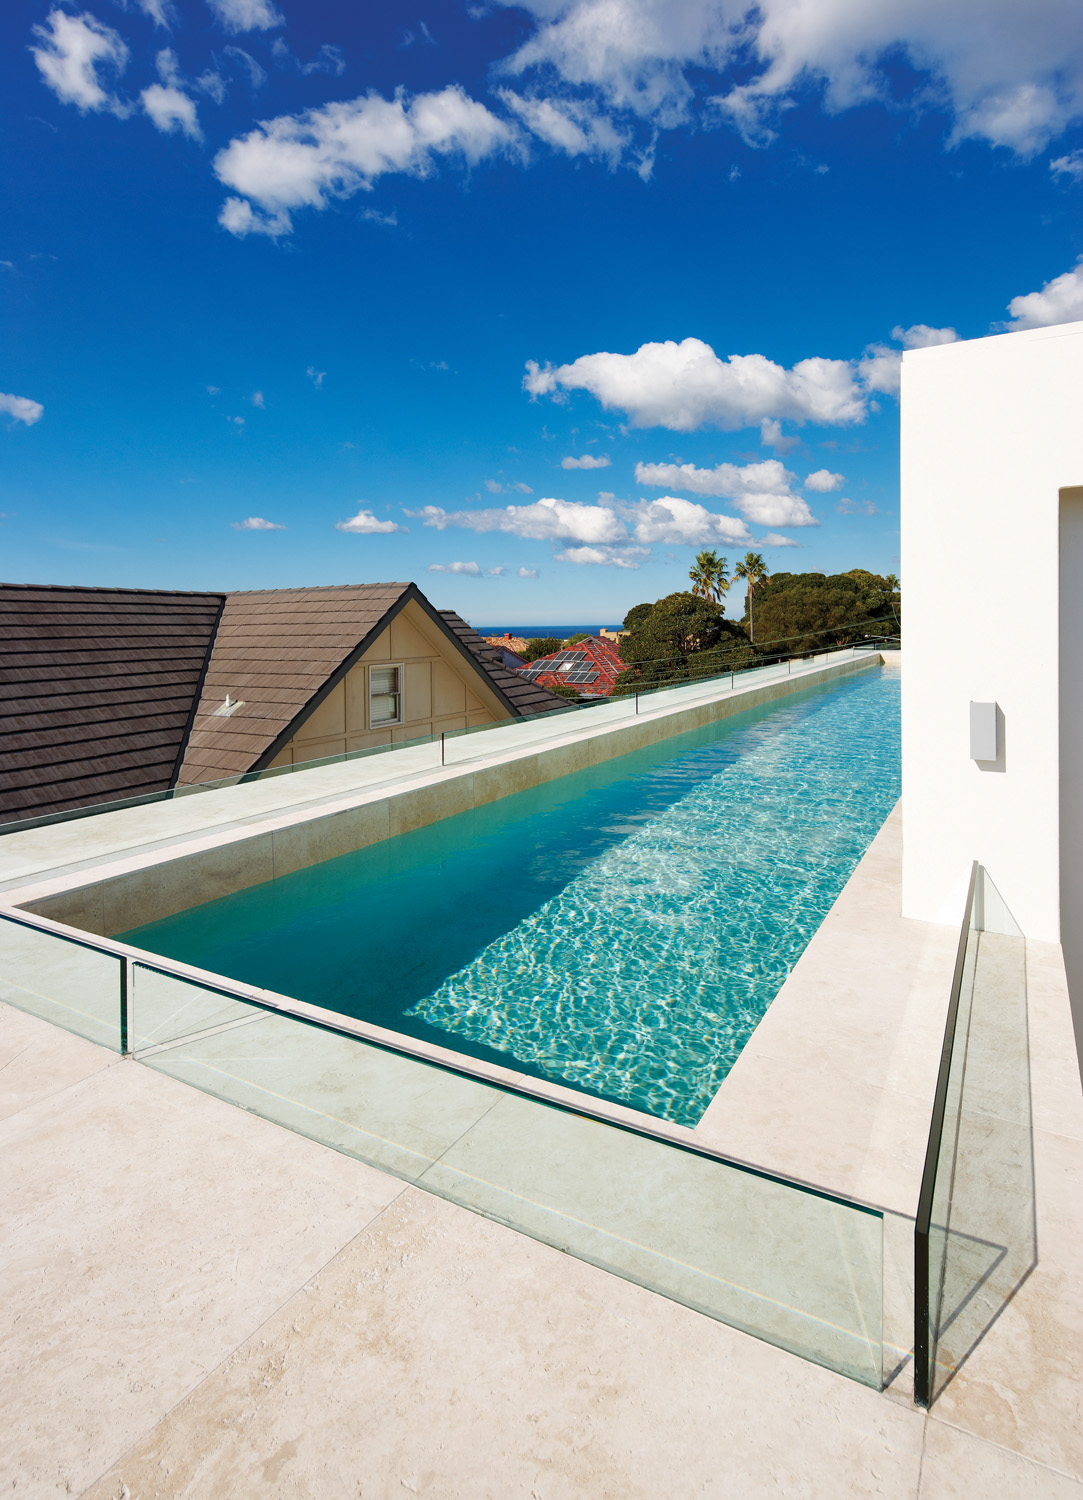 Rooftop lap pool with spectacular views